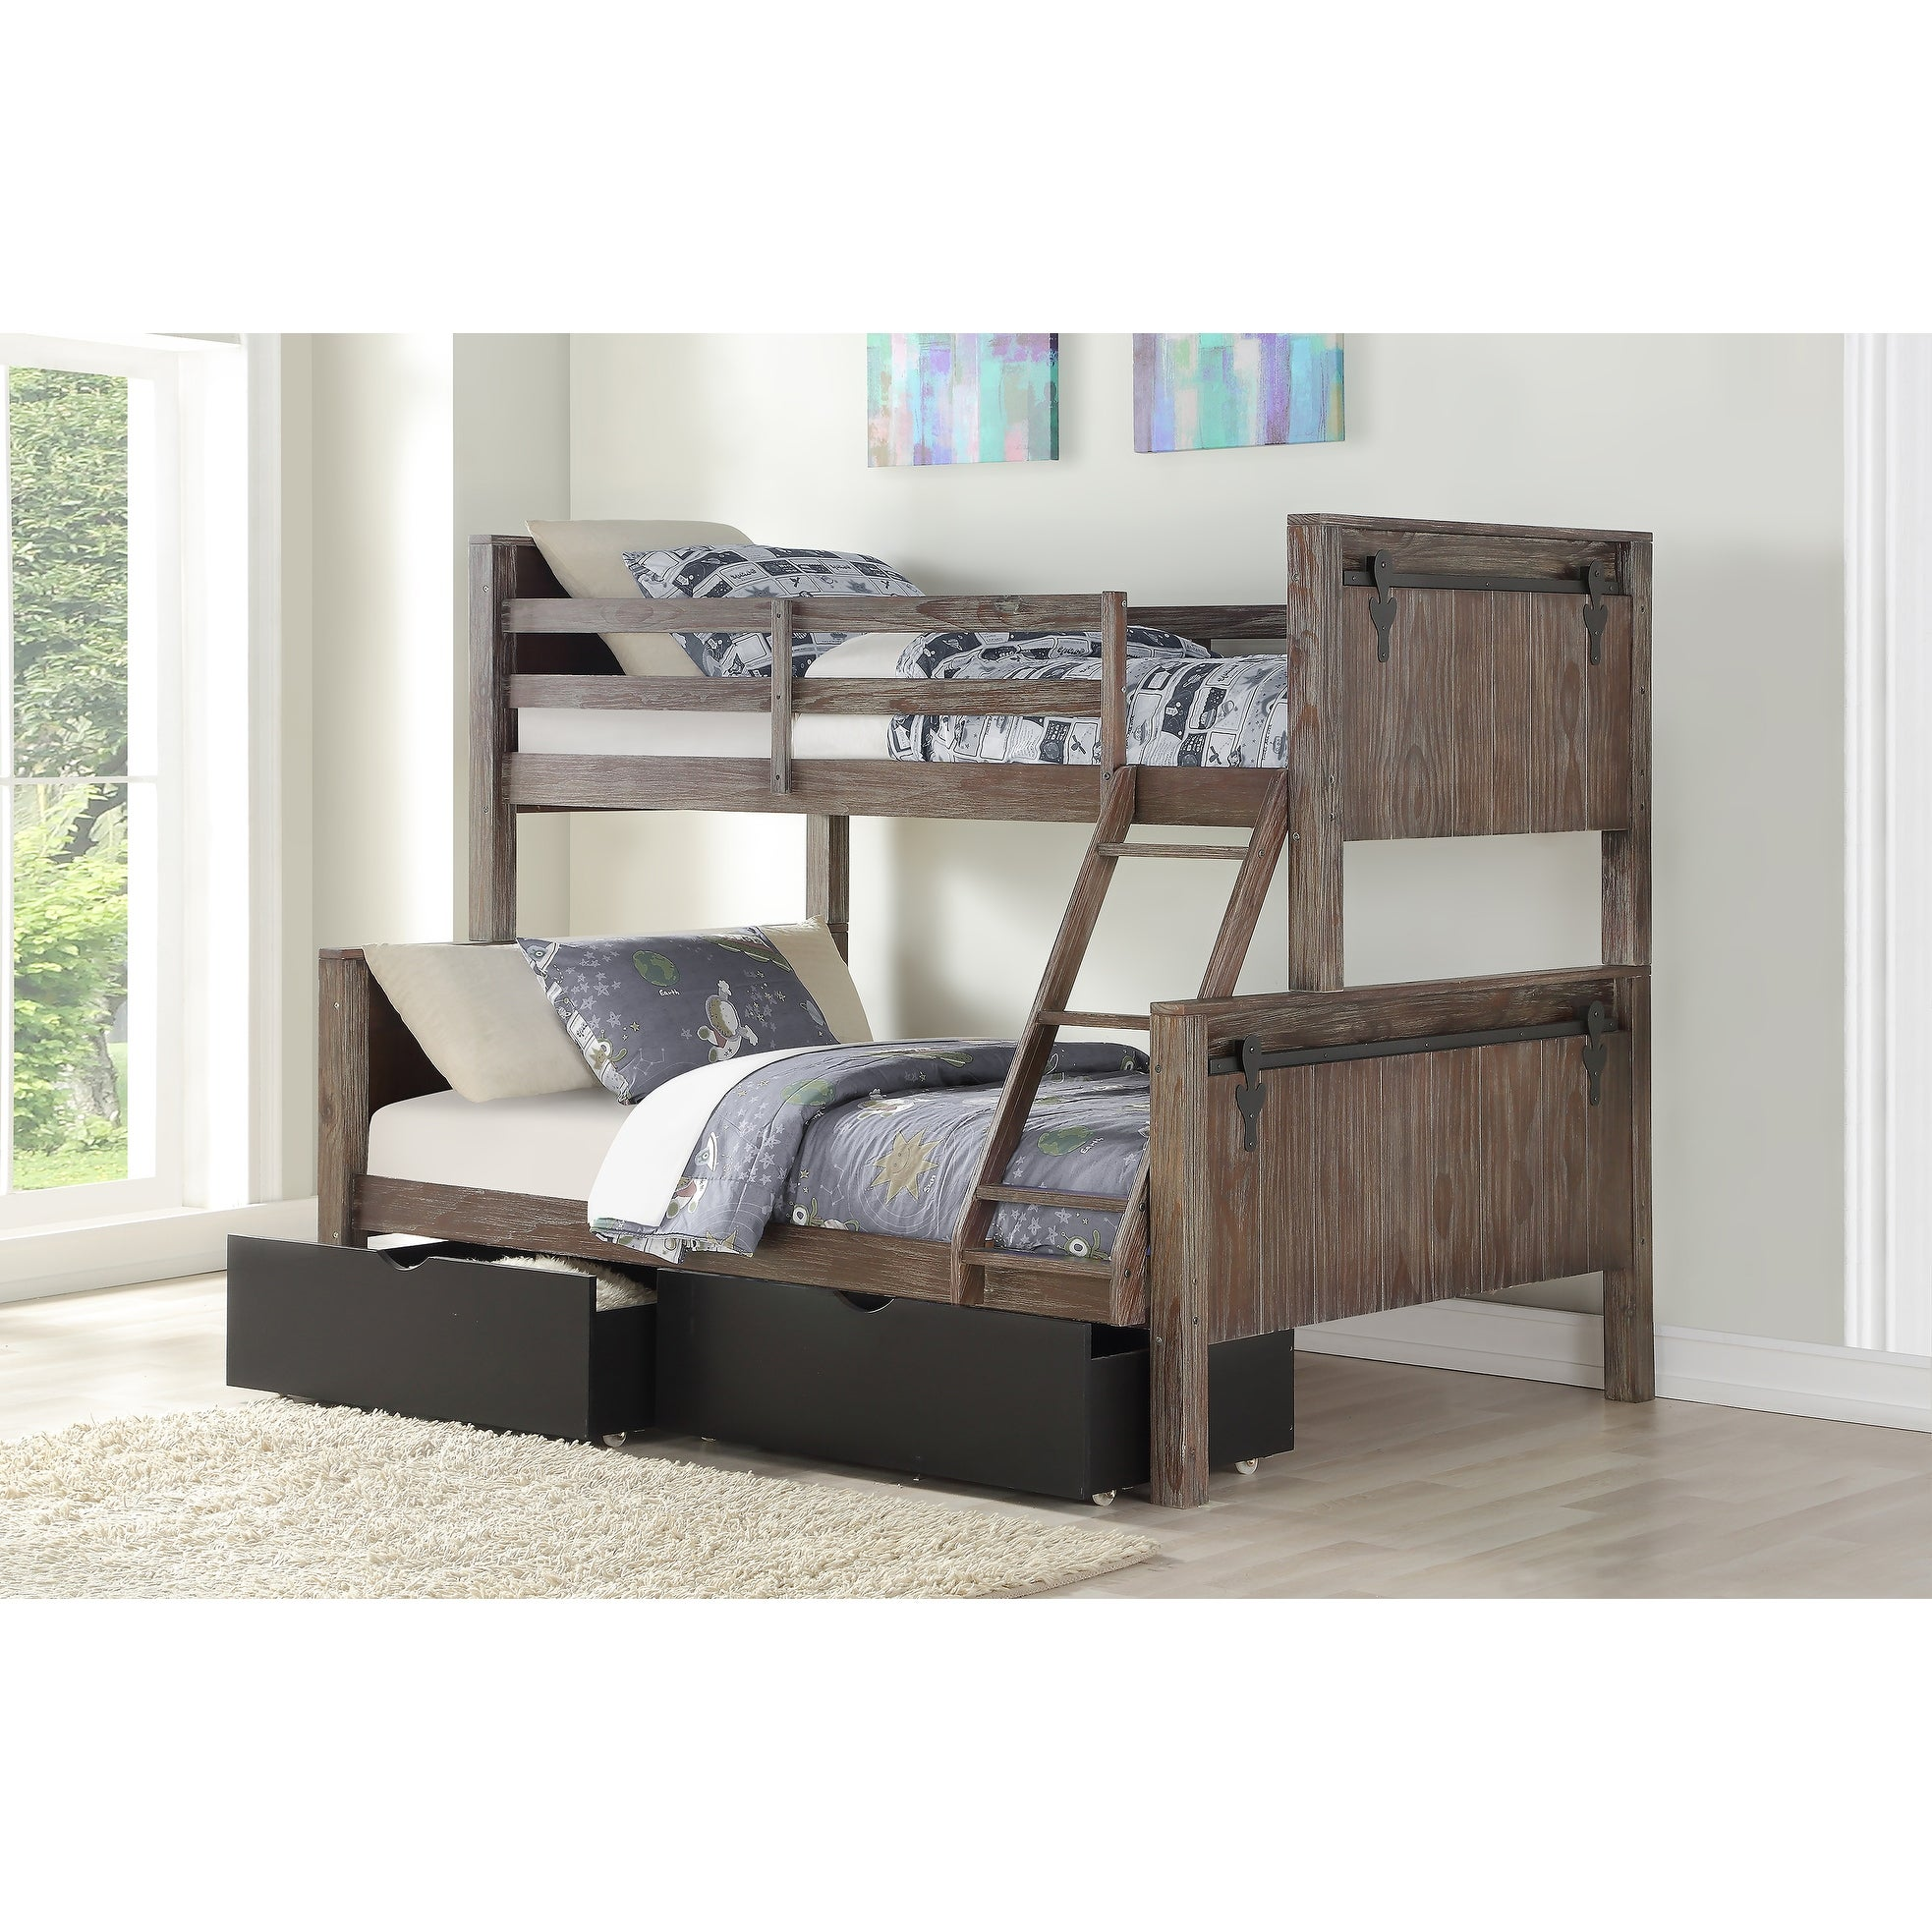 Picture of: Twin Over Full Barn Door Bunk Bed In Brushed Shadow With Storage Drawers In Low Sheen Black Overstock 28520687